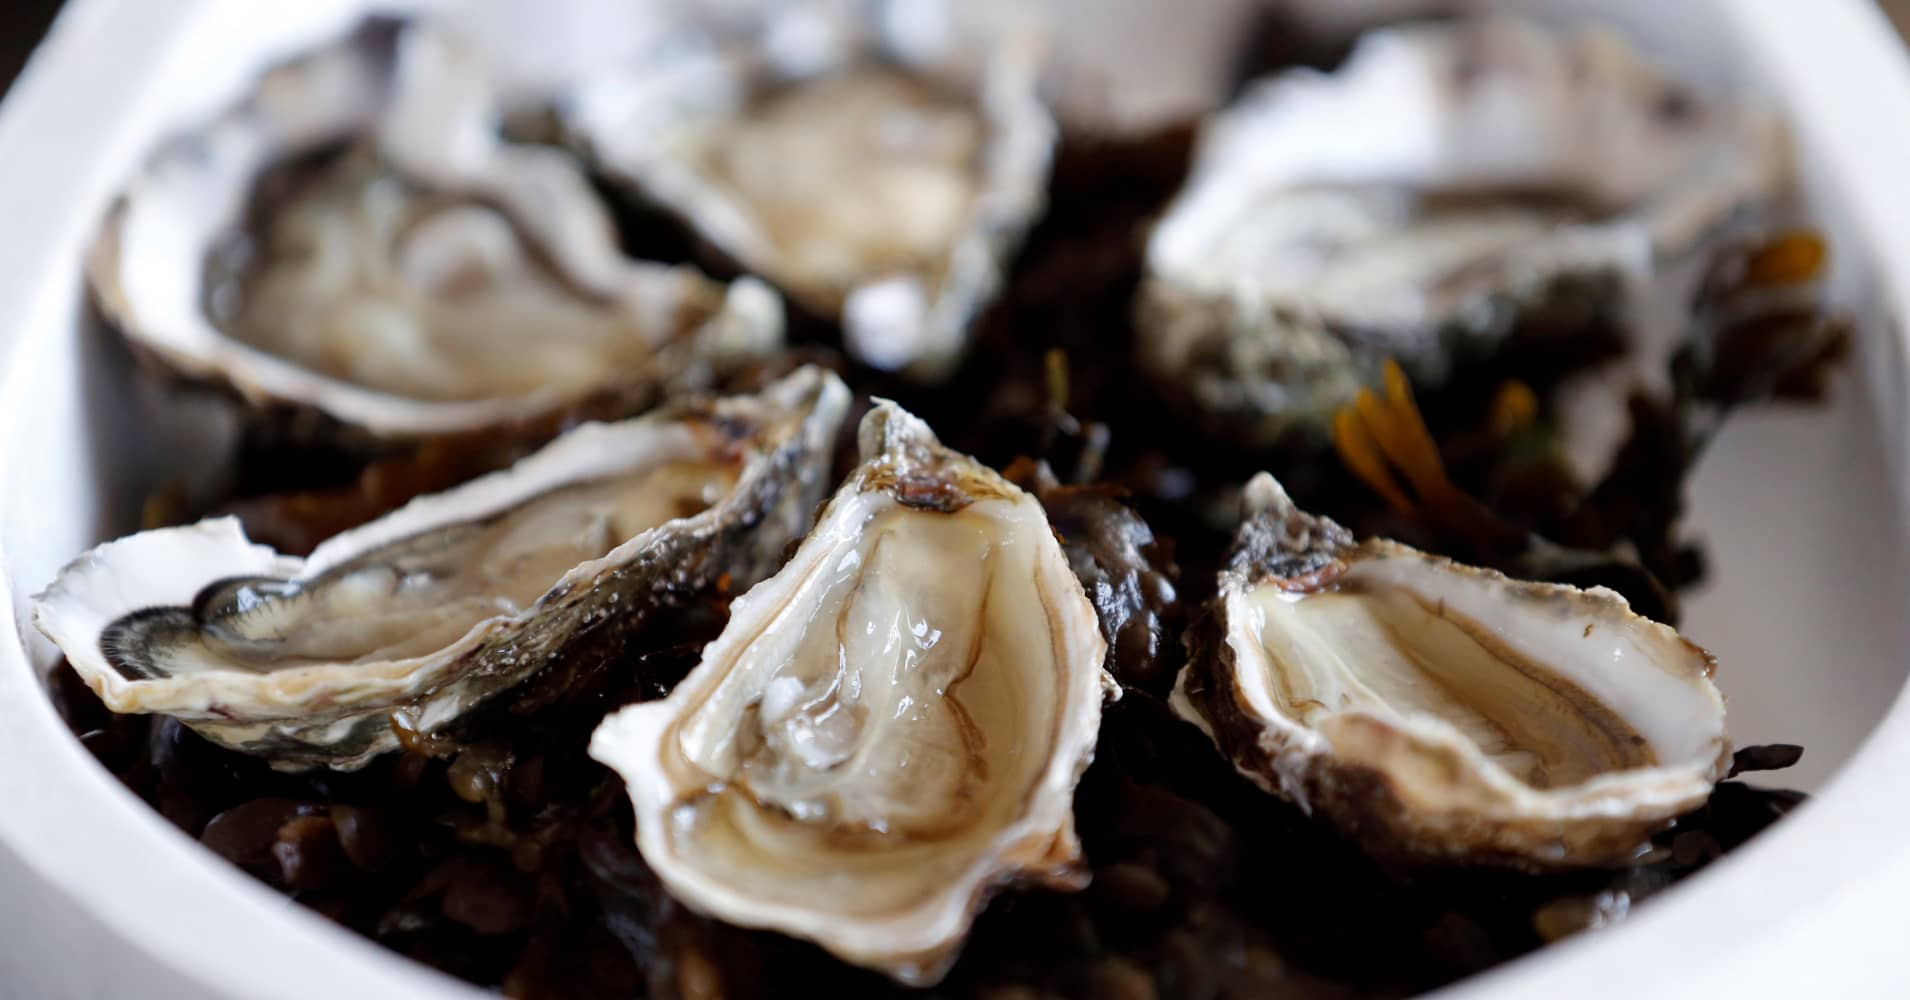 Oysters are pictured on the Re Island, where an automatic oyster vending machine is set at l'huitriere de Re in Ars en Re, Southwestern France, August 2, 2017.